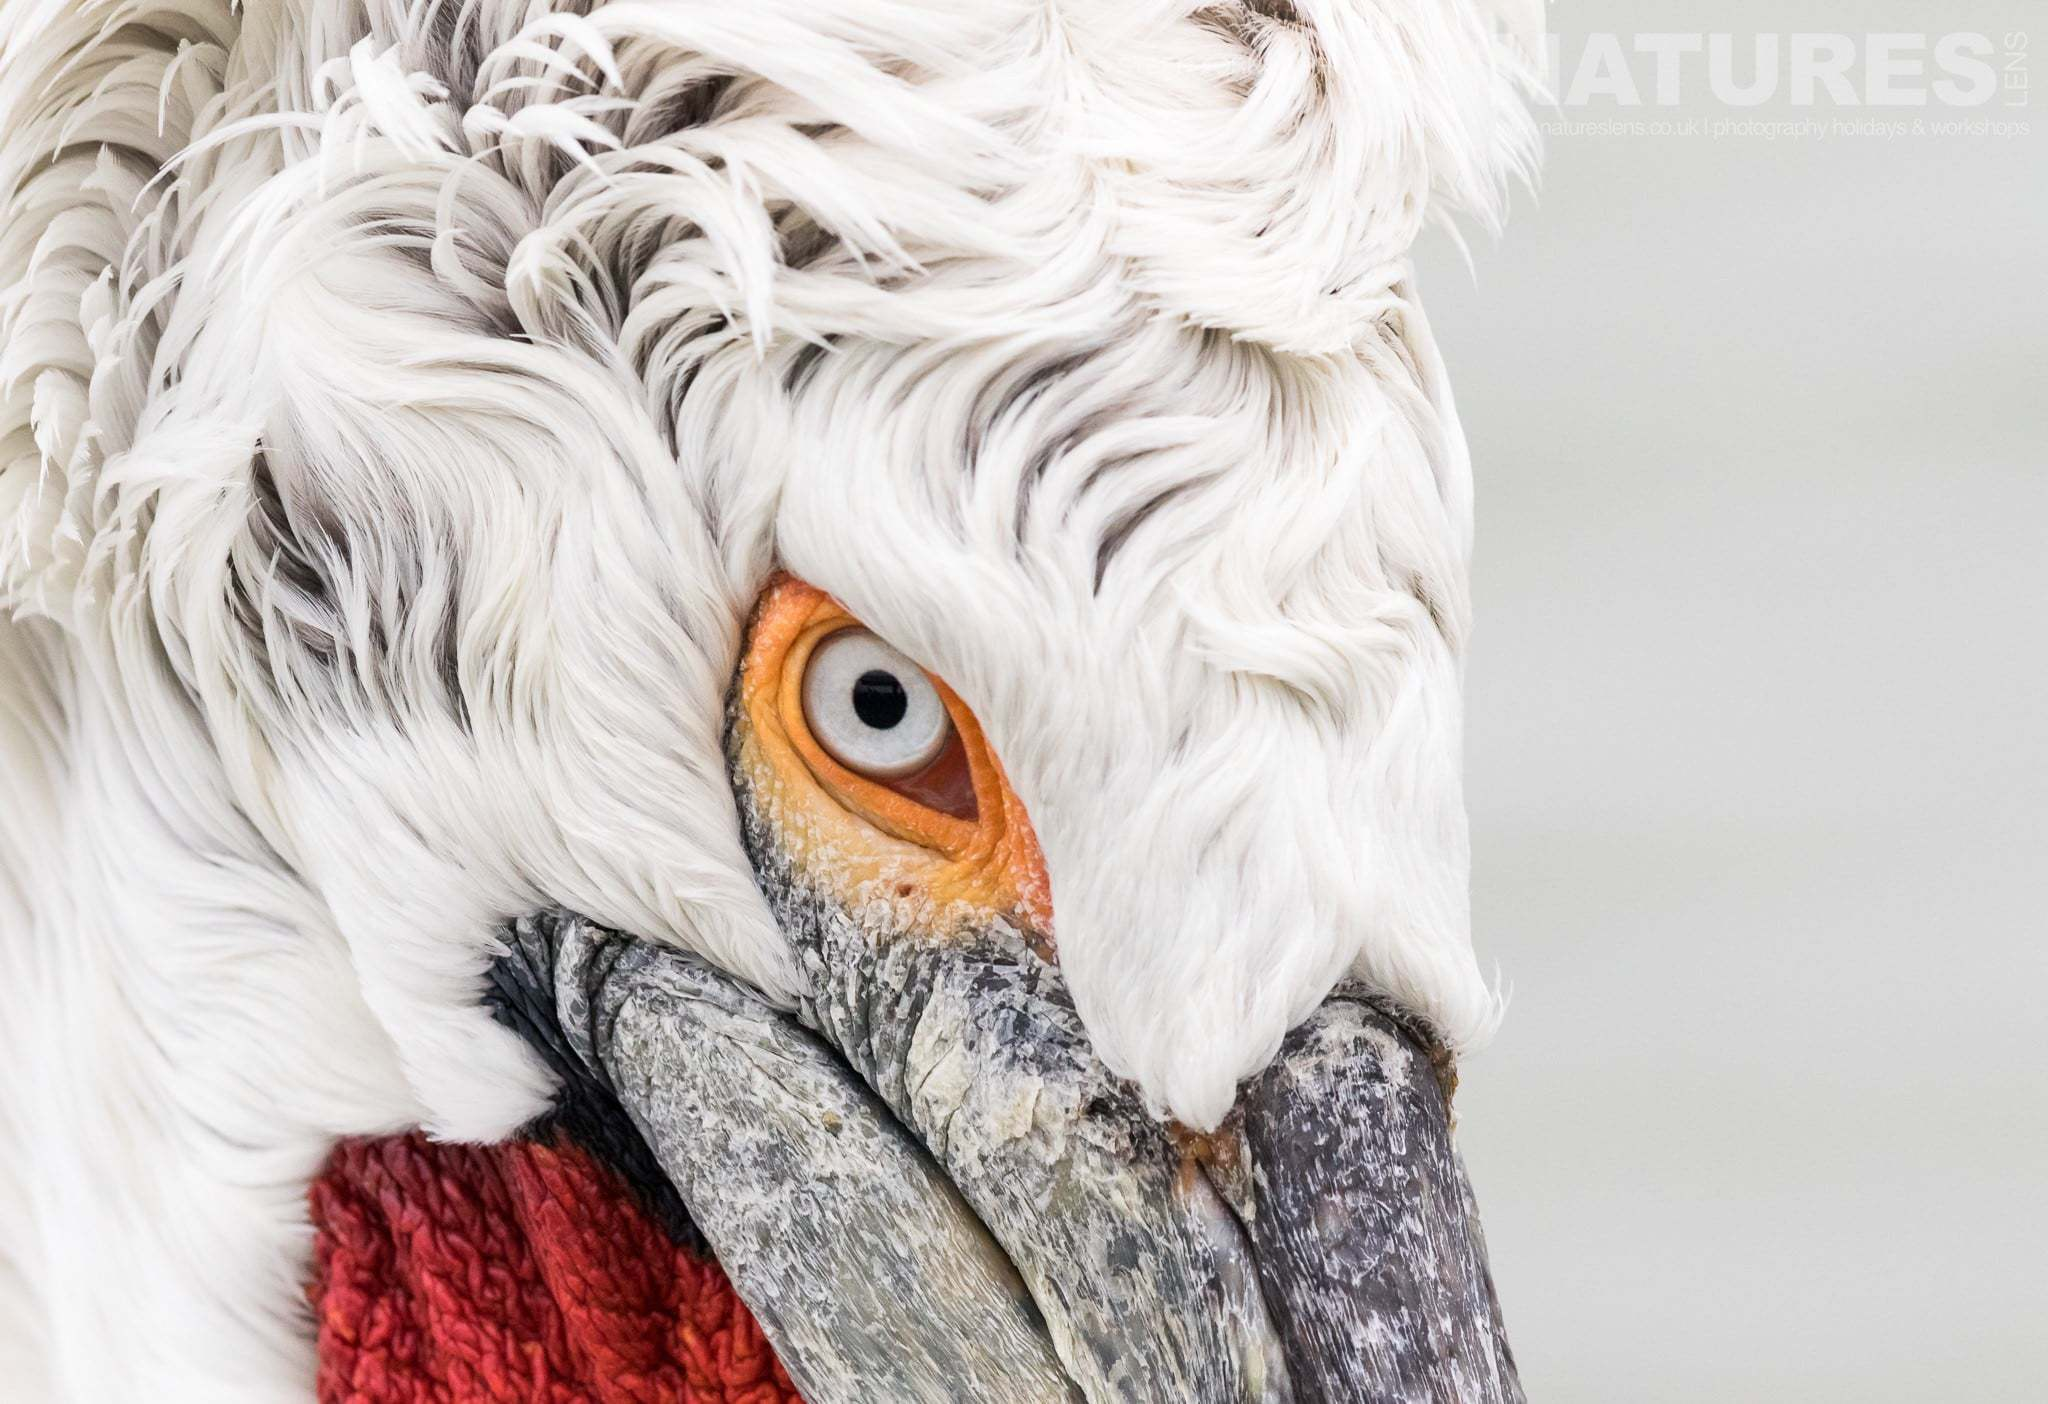 A close up of the head of one of the Dalmatian Pelicans of Lake Kerkini photographed during the NaturesLens Dalmatian Pelican Photography Holiday